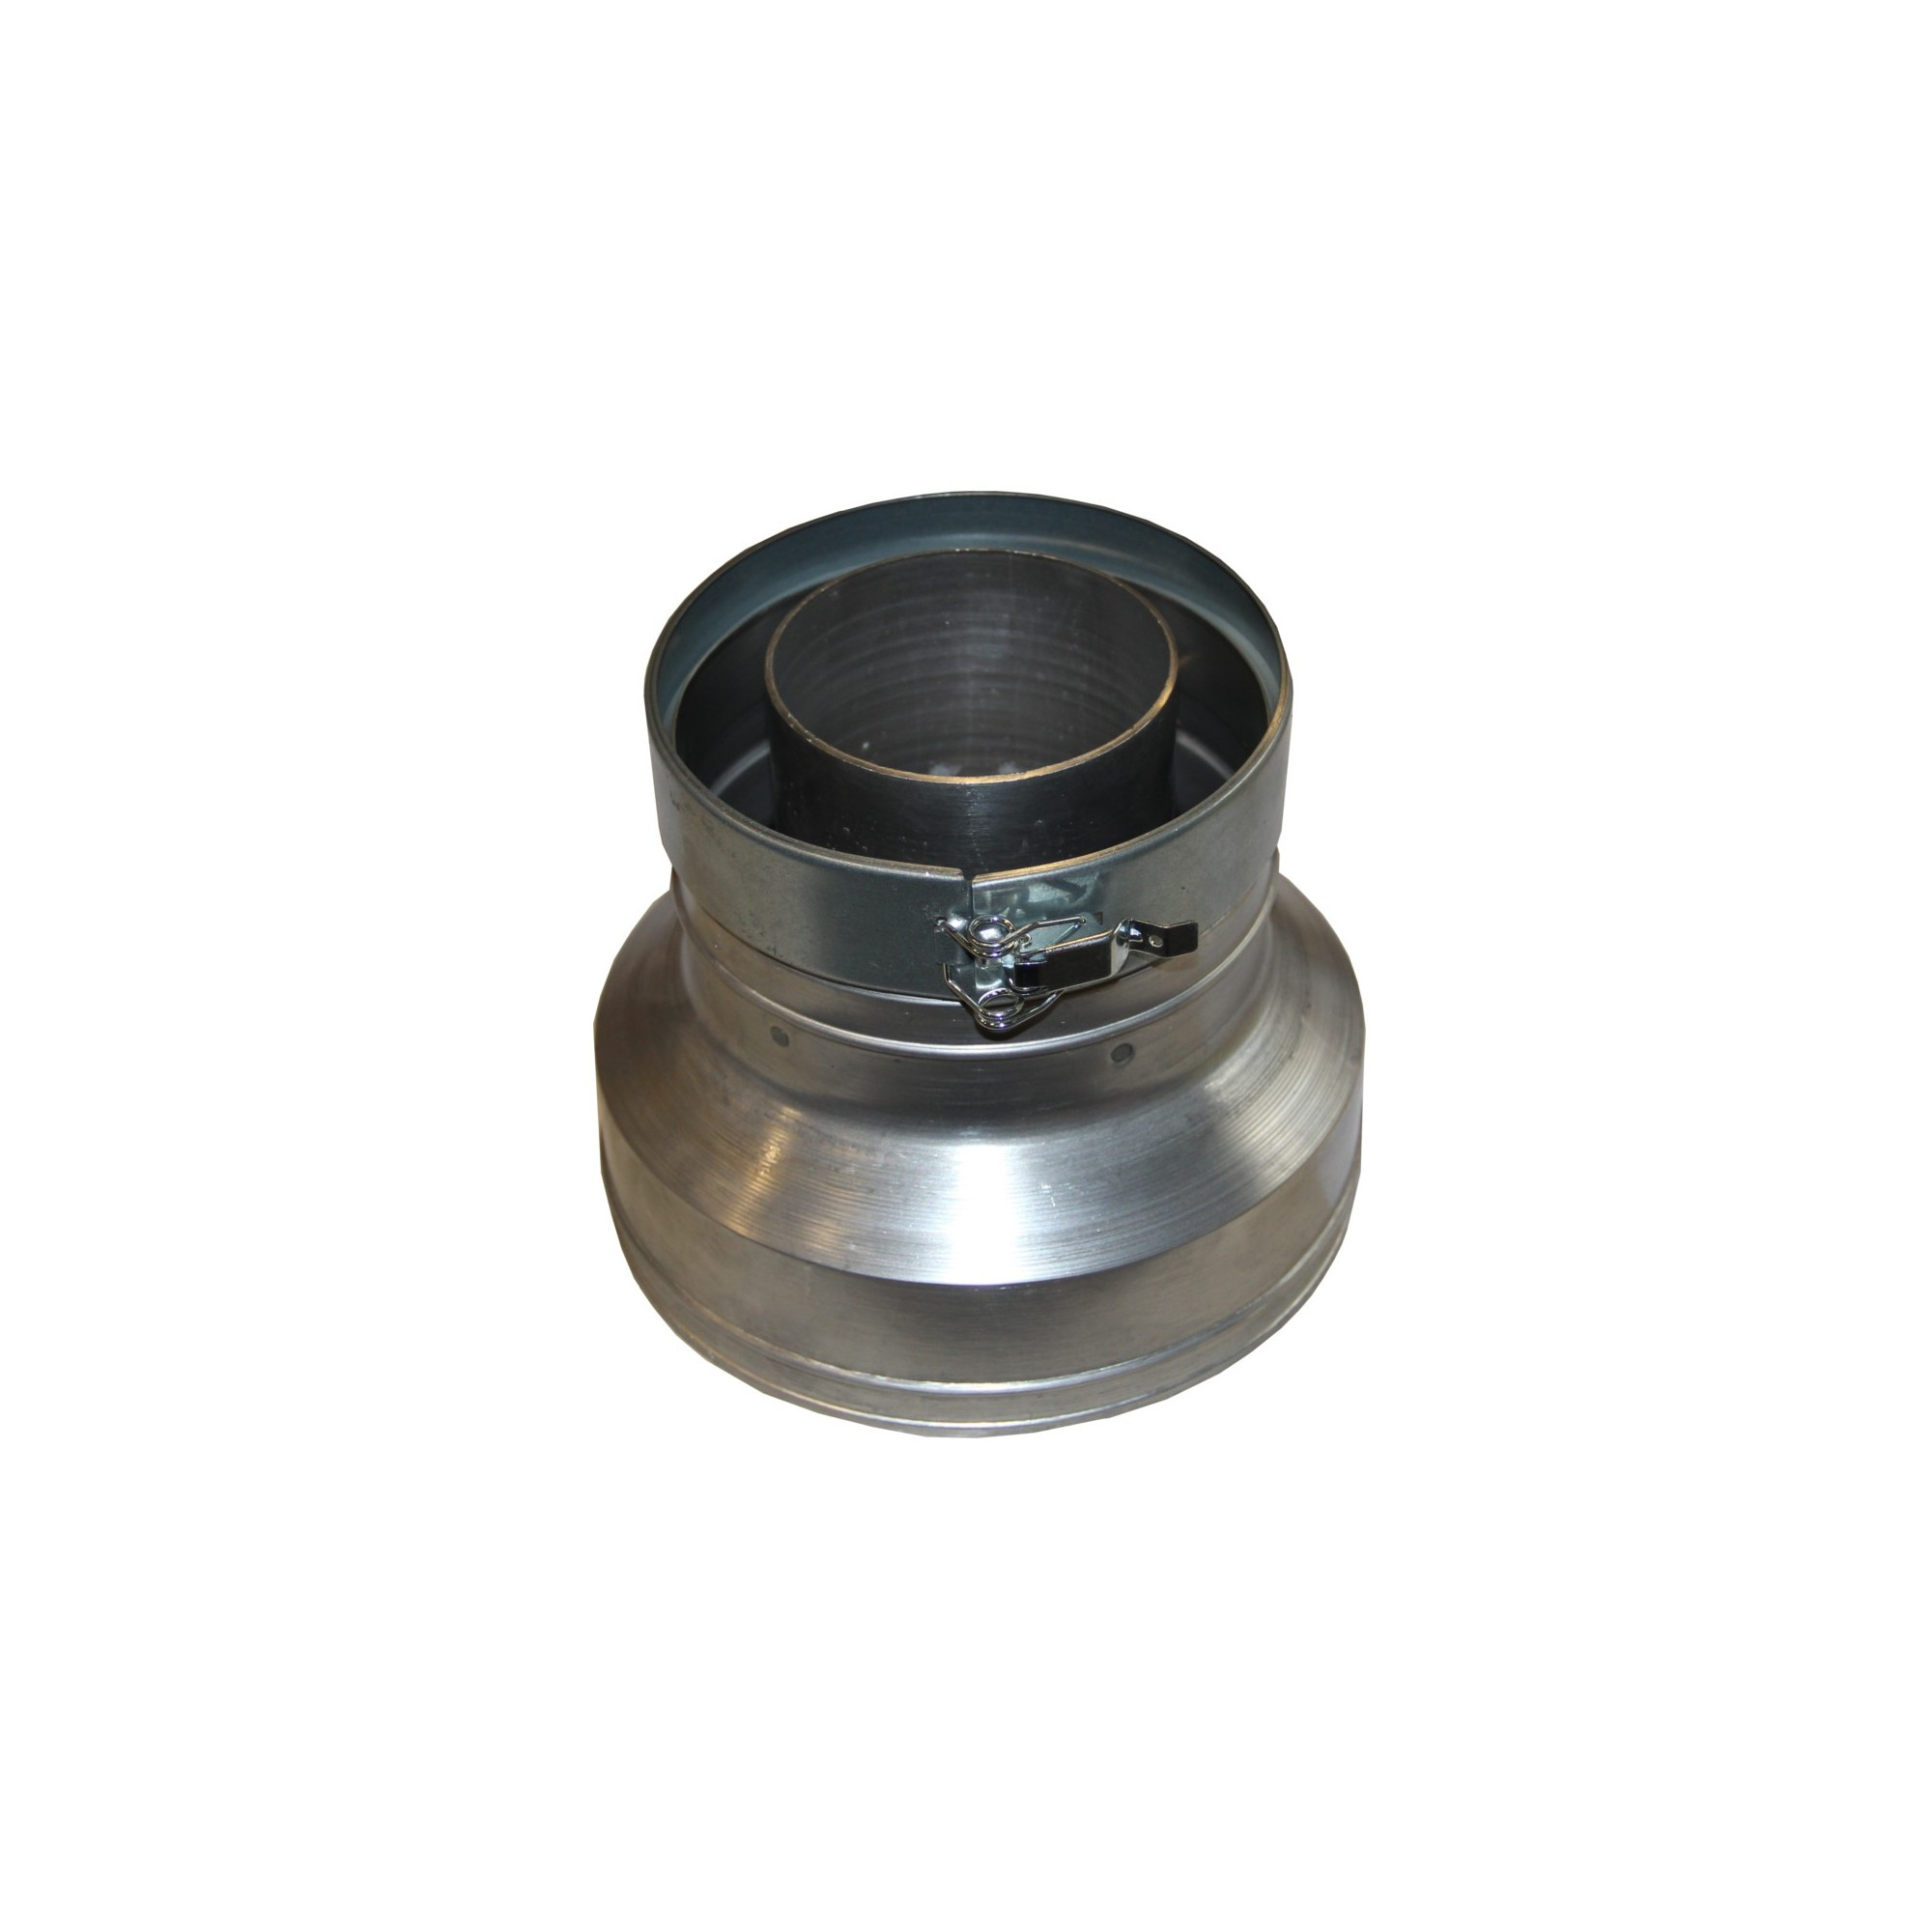 CONNECTOR 100/150 - 130/200